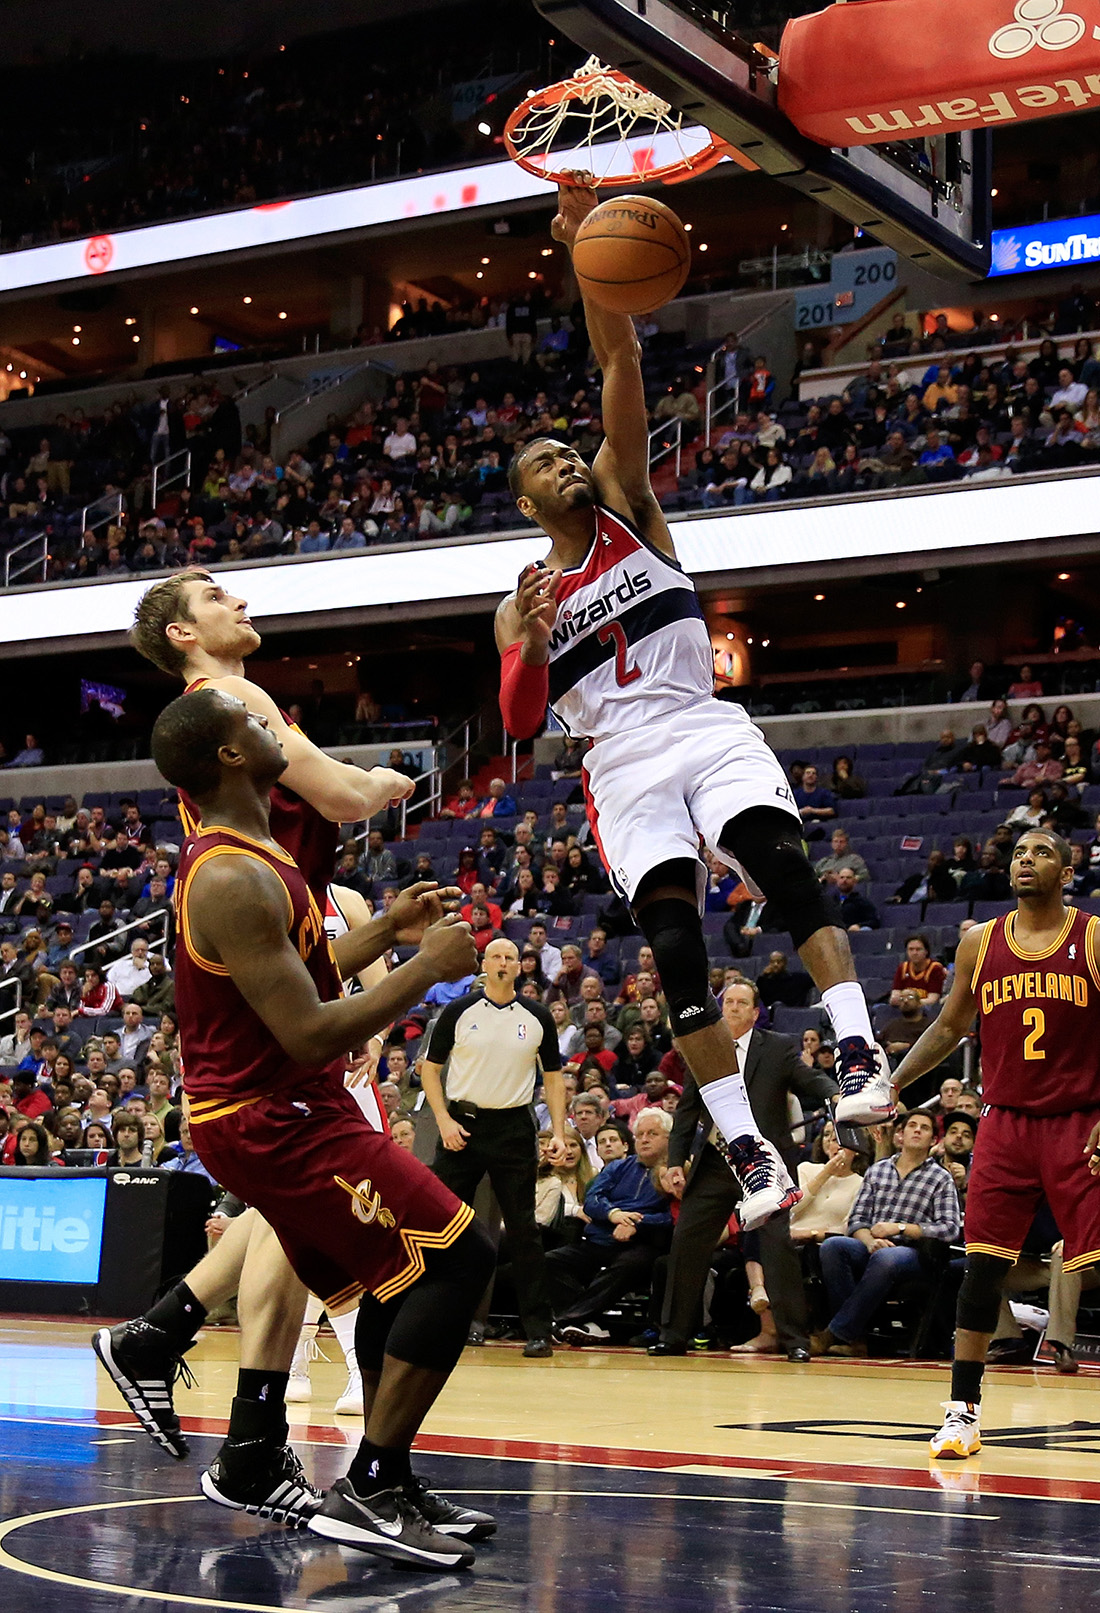 John Wall de Washington Wizards en viva basquet